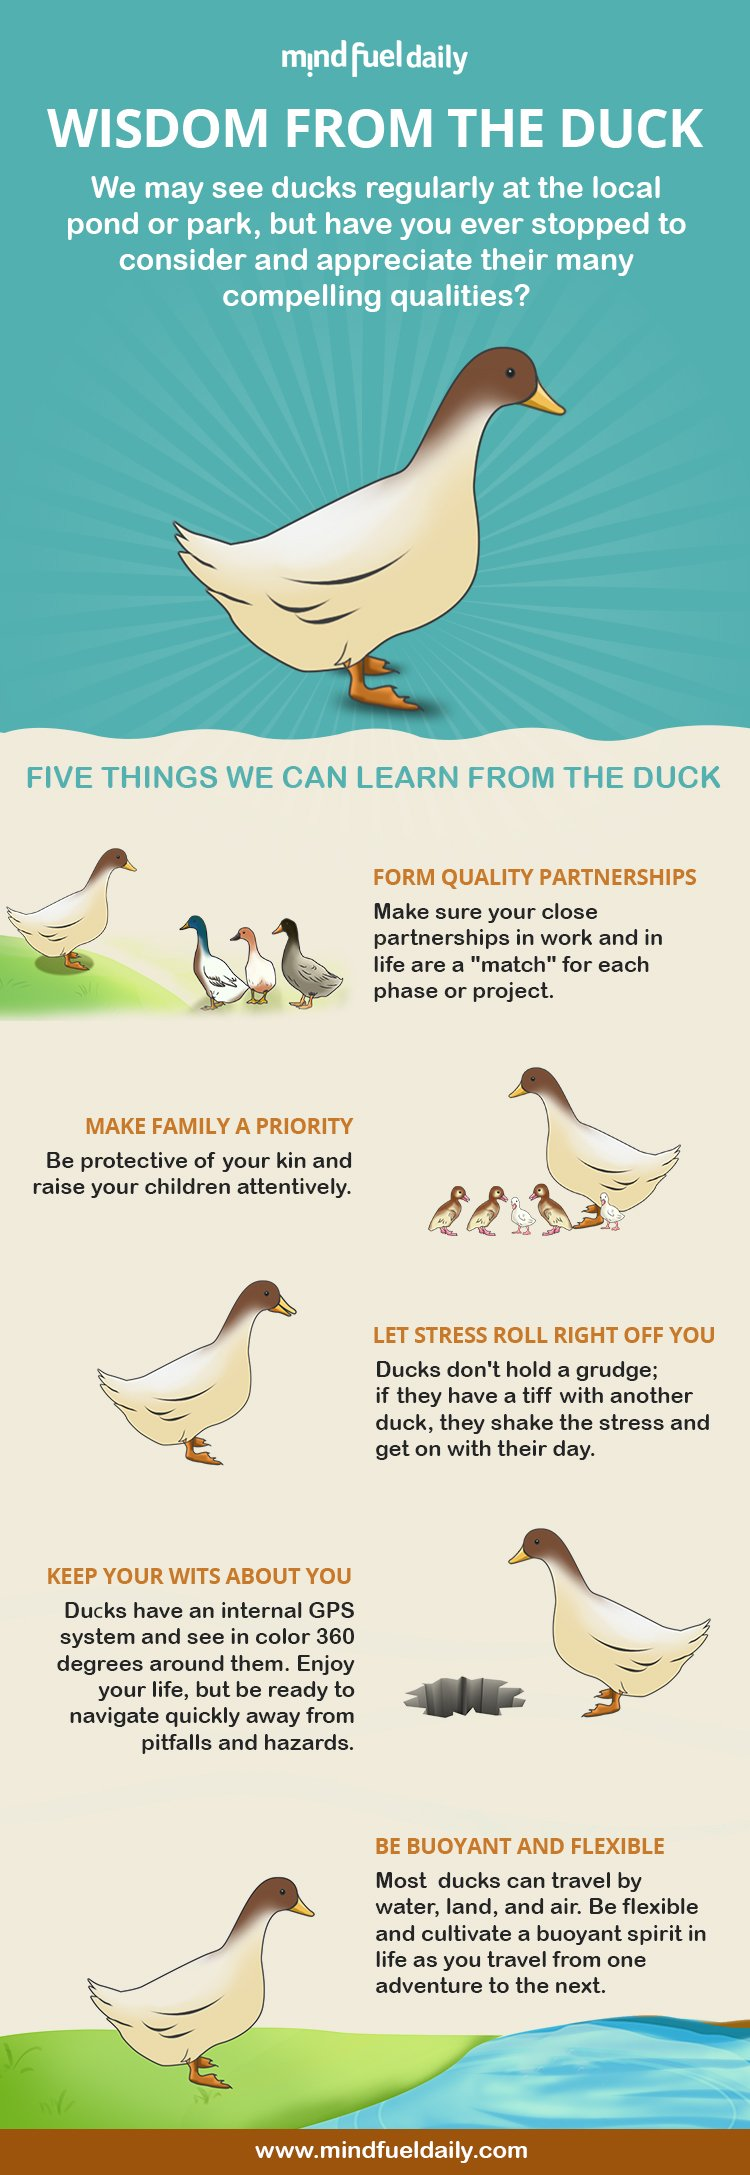 5 Things We Can Learn From Ducks